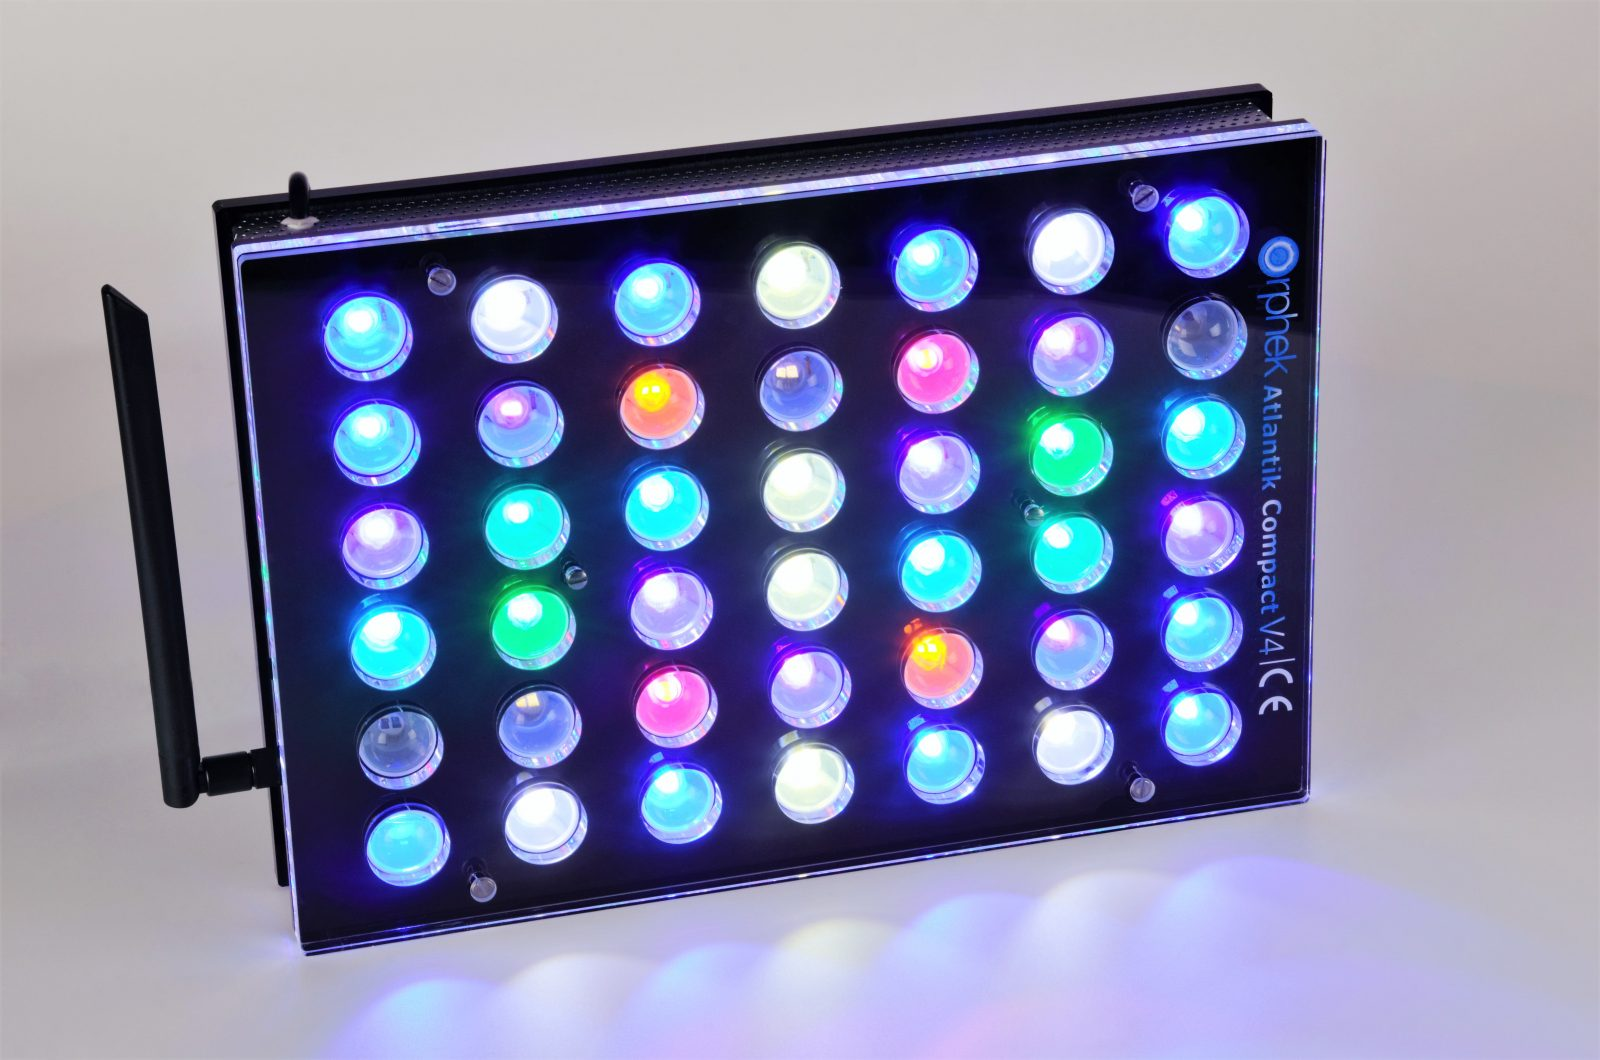 Orphek-Aquarium-LED-Lighting-Atlantik -Compact-V4-light -on - channel 1 +2+3+4